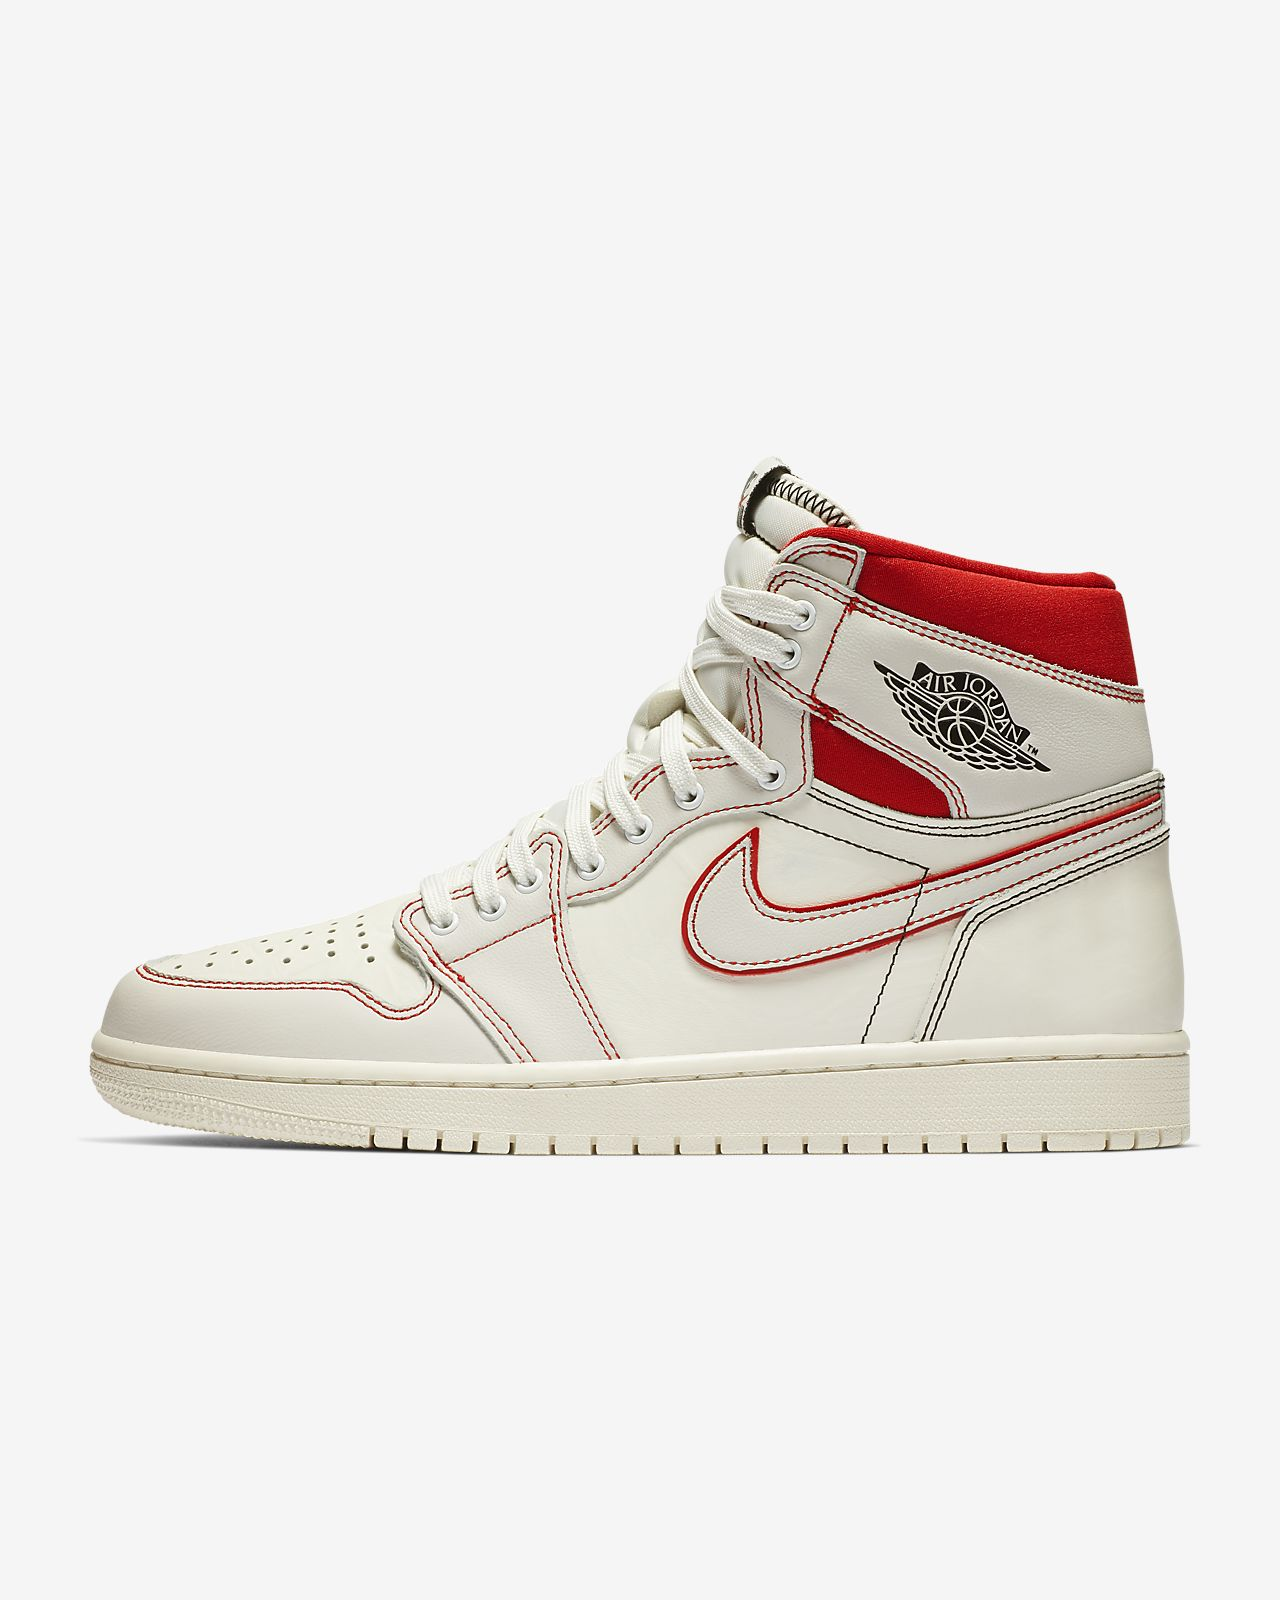 new styles 4866c 277d5 Air Jordan 1 Retro High OG Shoe